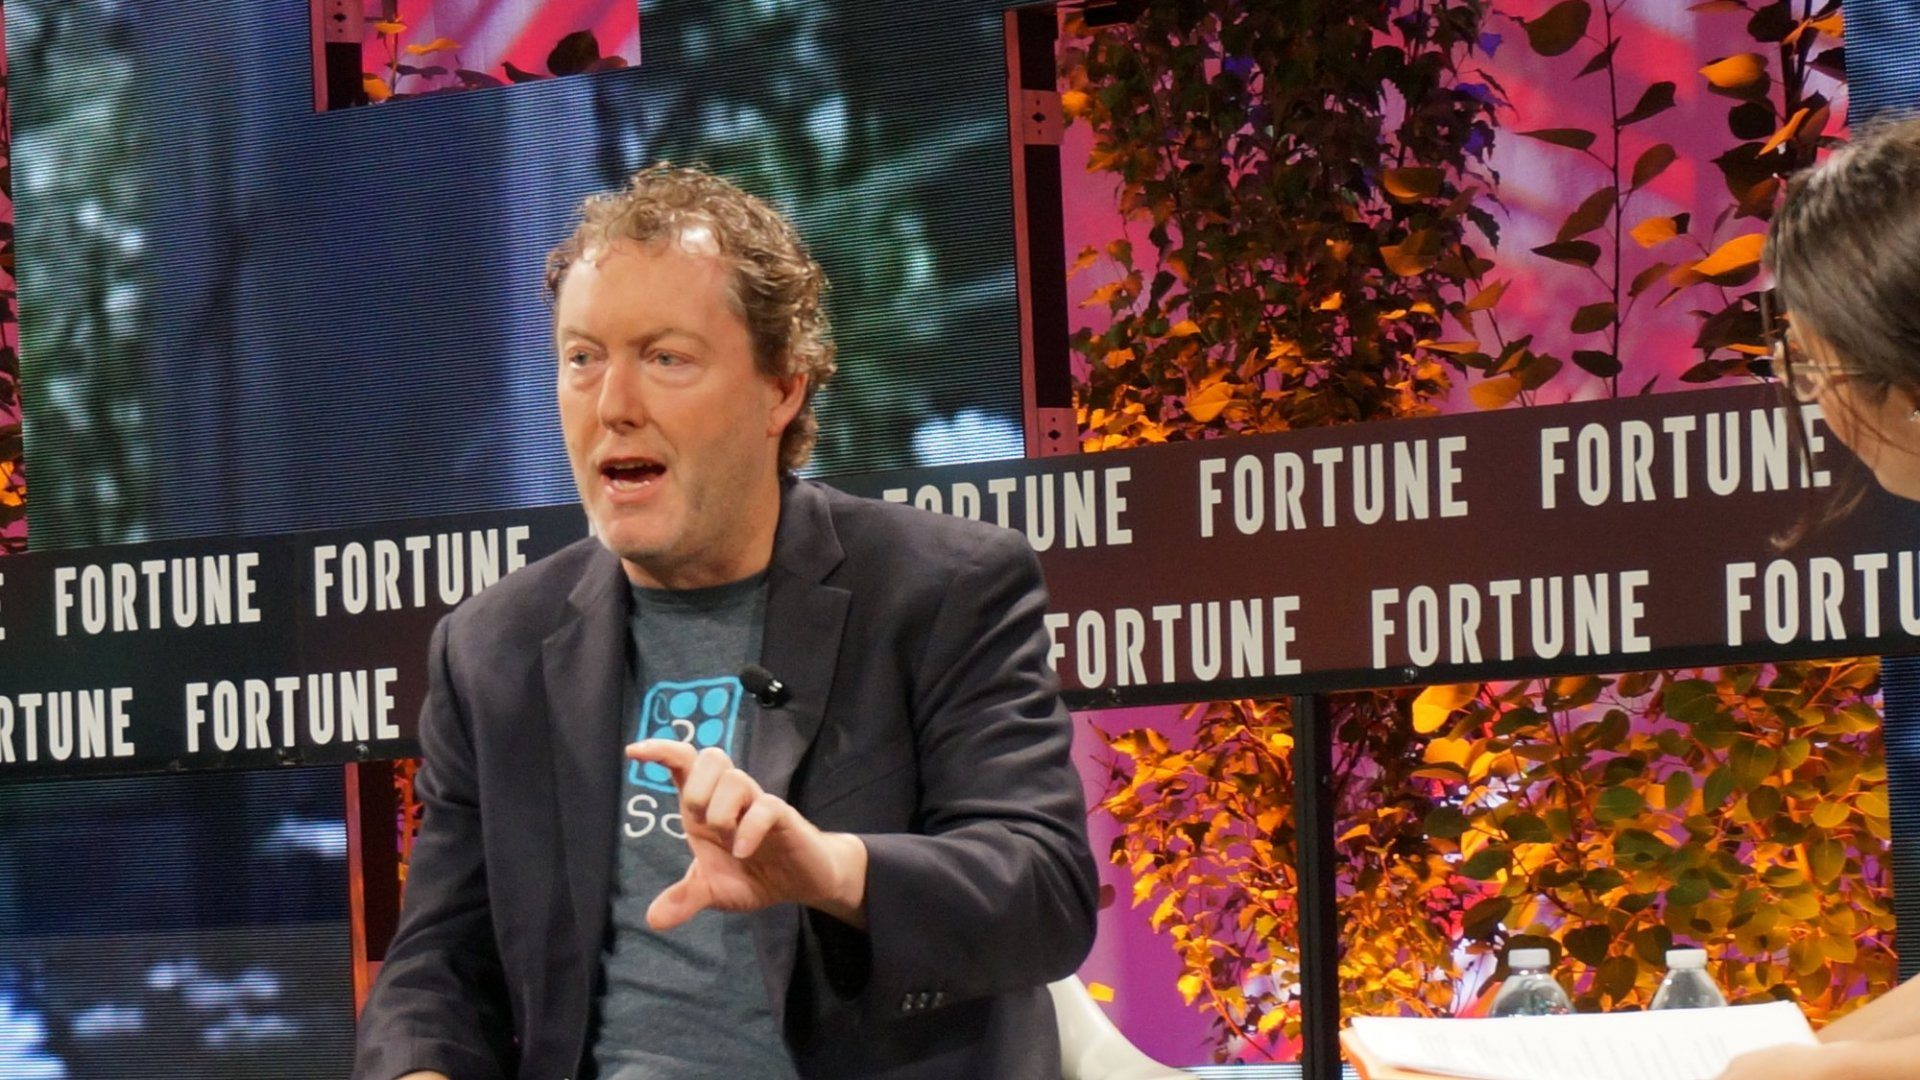 SoFi CEO Mike Cagney Is Leaving the Startup He Co-Founded